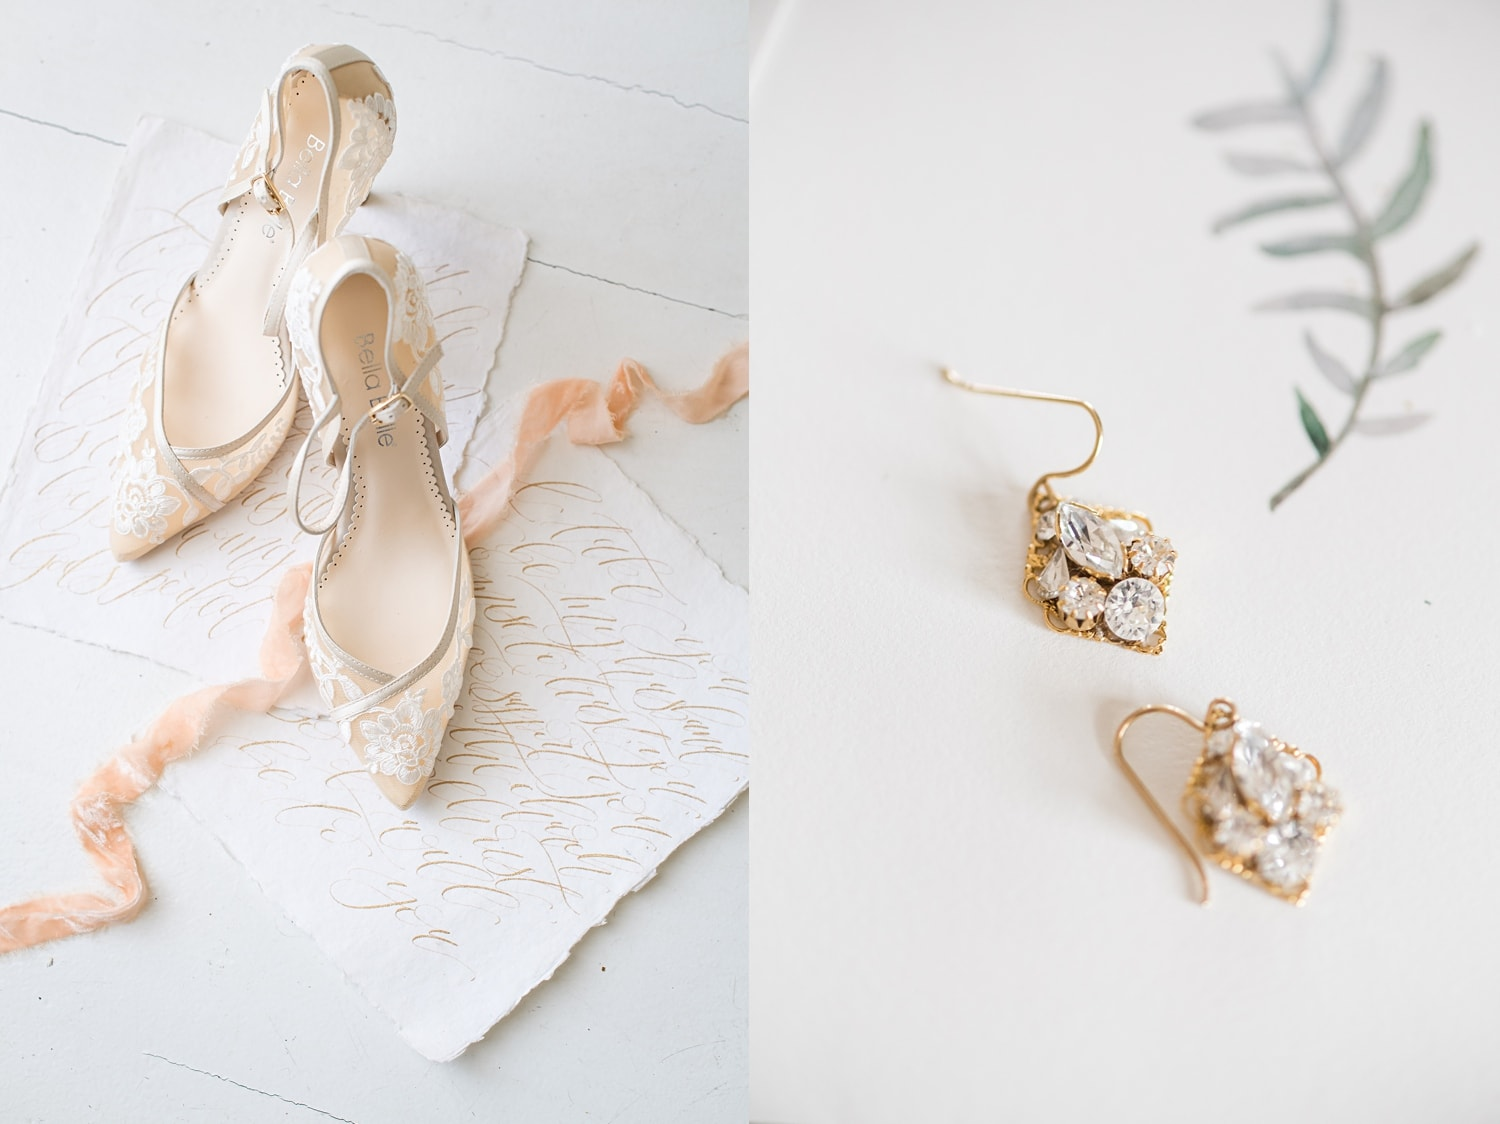 accessories you need to have for your wedding day